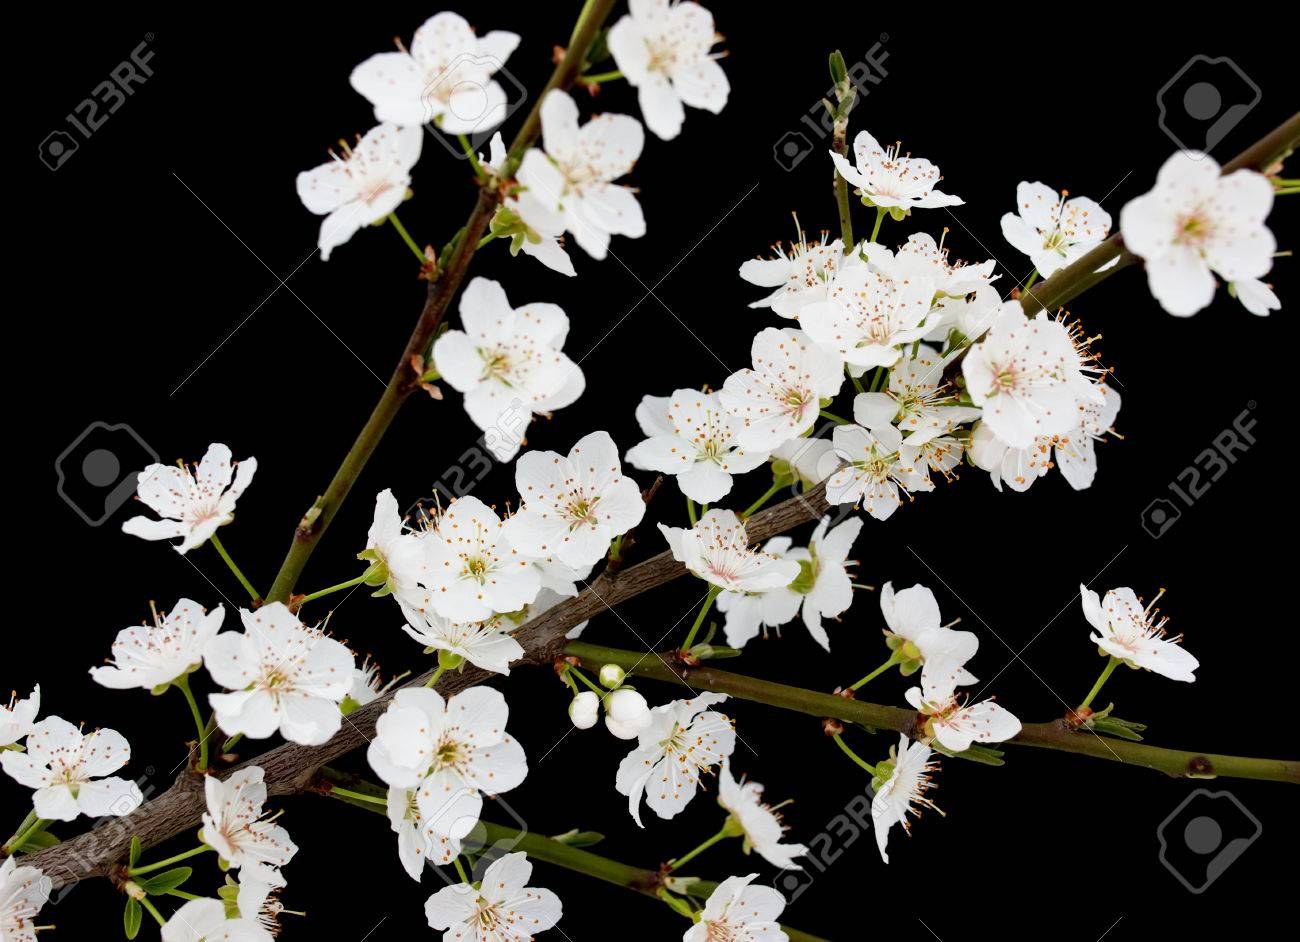 Small White Flowers On A Branch On A Black Background Stock Photo